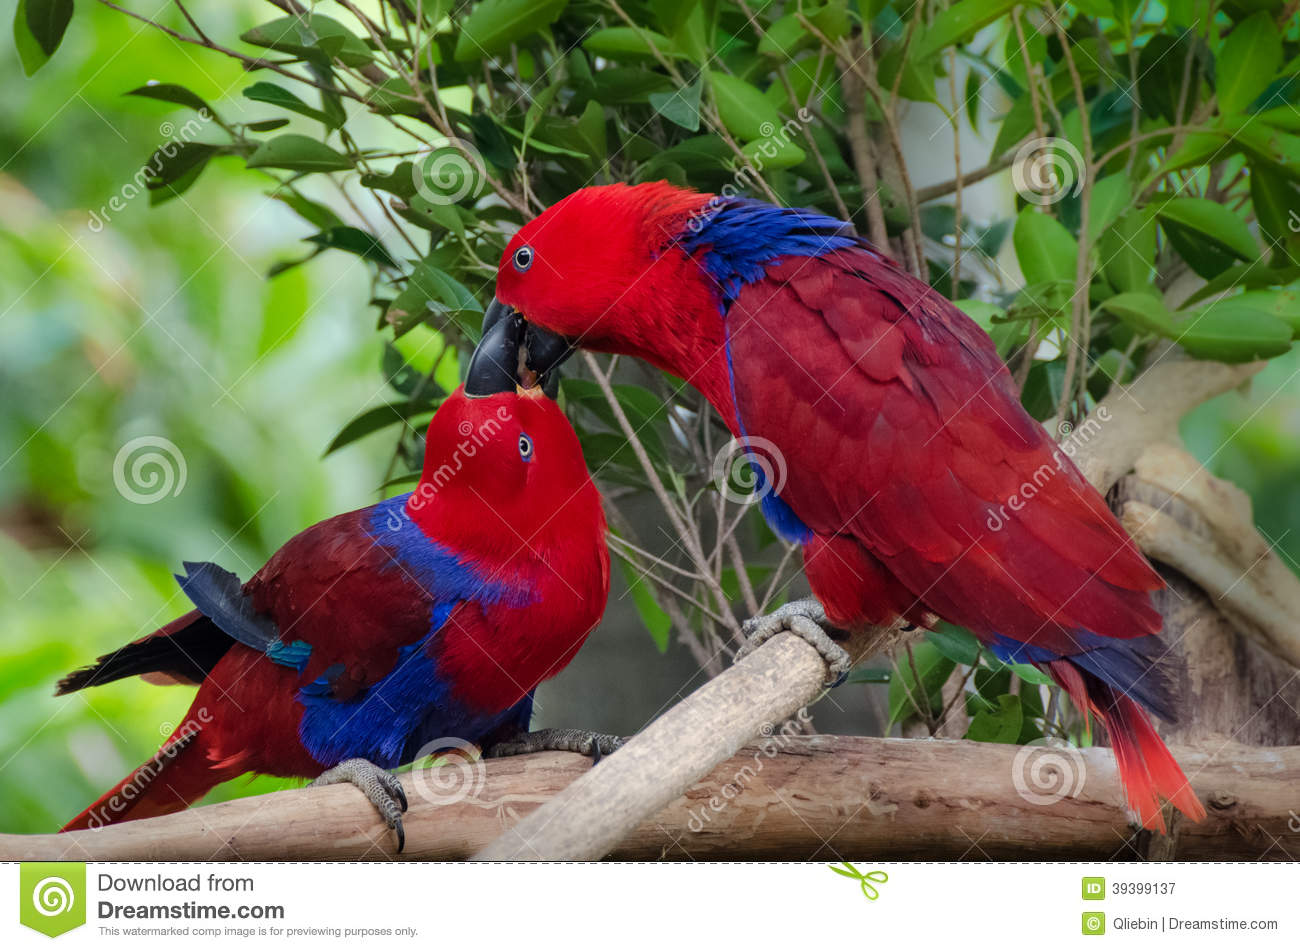 328 Parrots Kiss Photos Free Royalty Free Stock Photos From Dreamstime